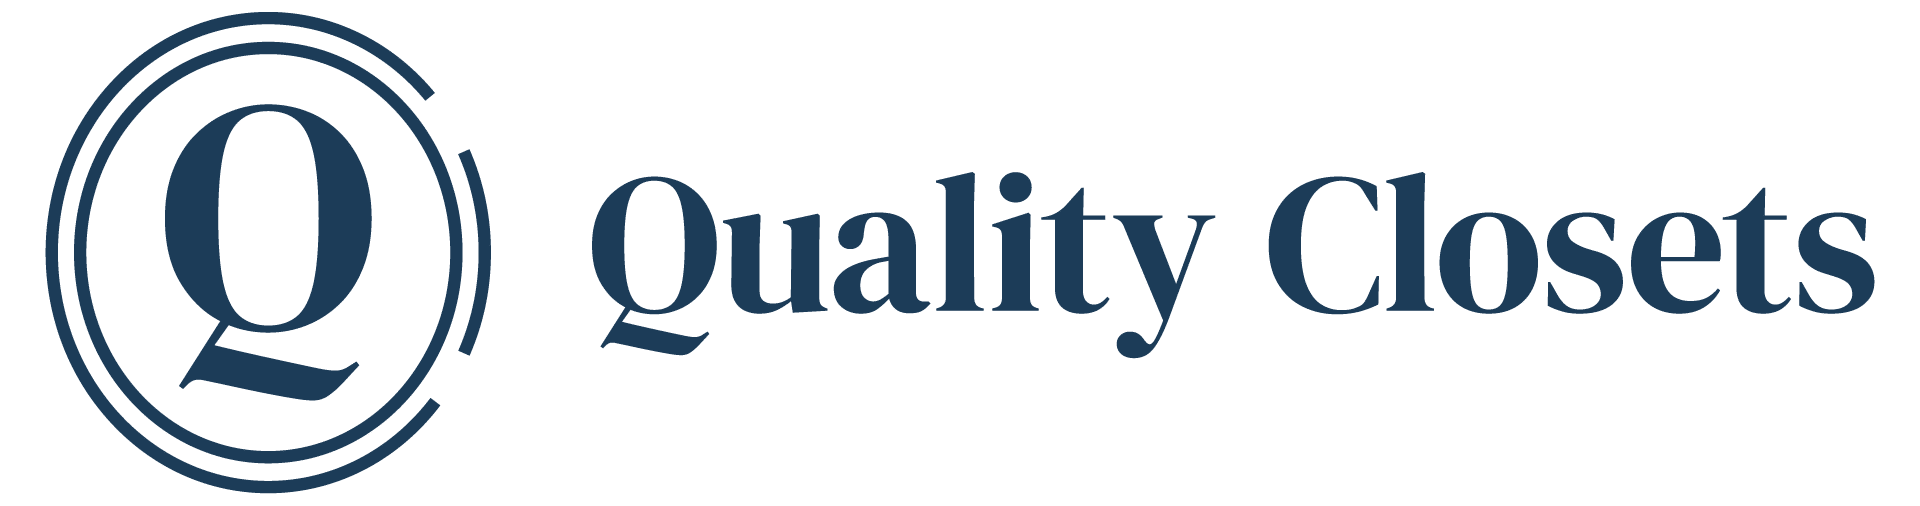 Quality Closets logo